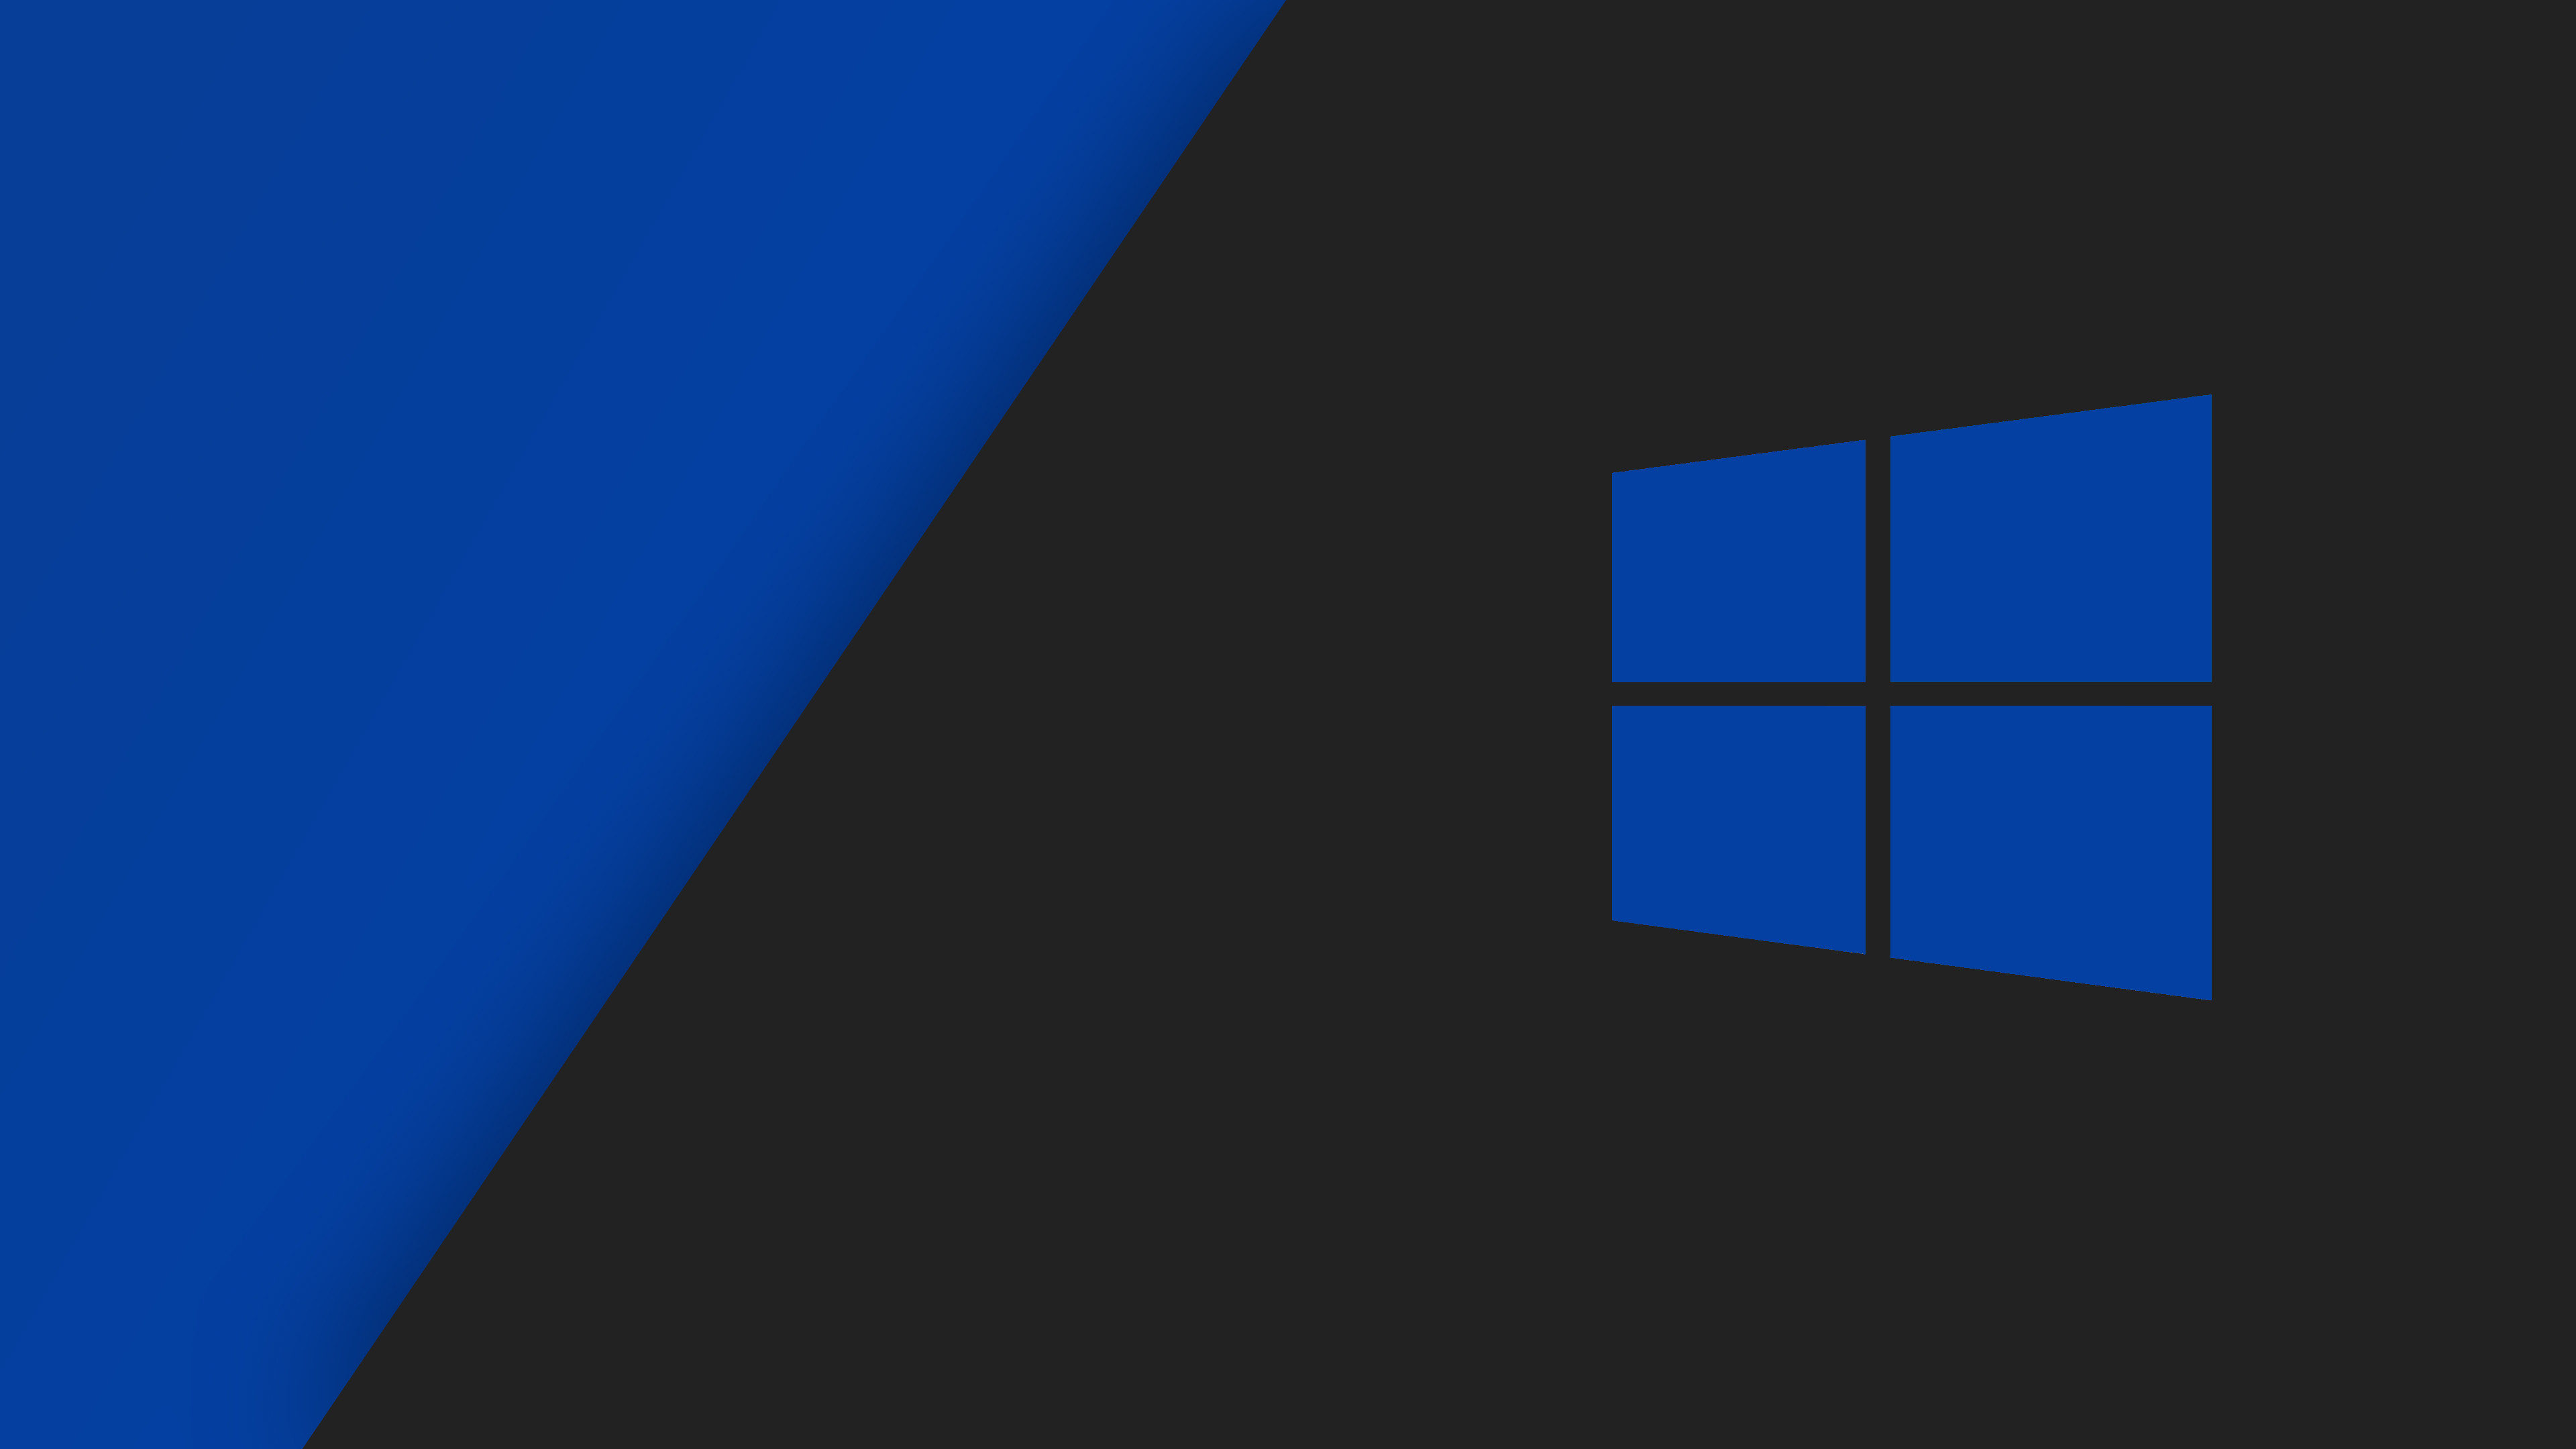 … 4k Windows 10 Wallpapers High Quality Download Free